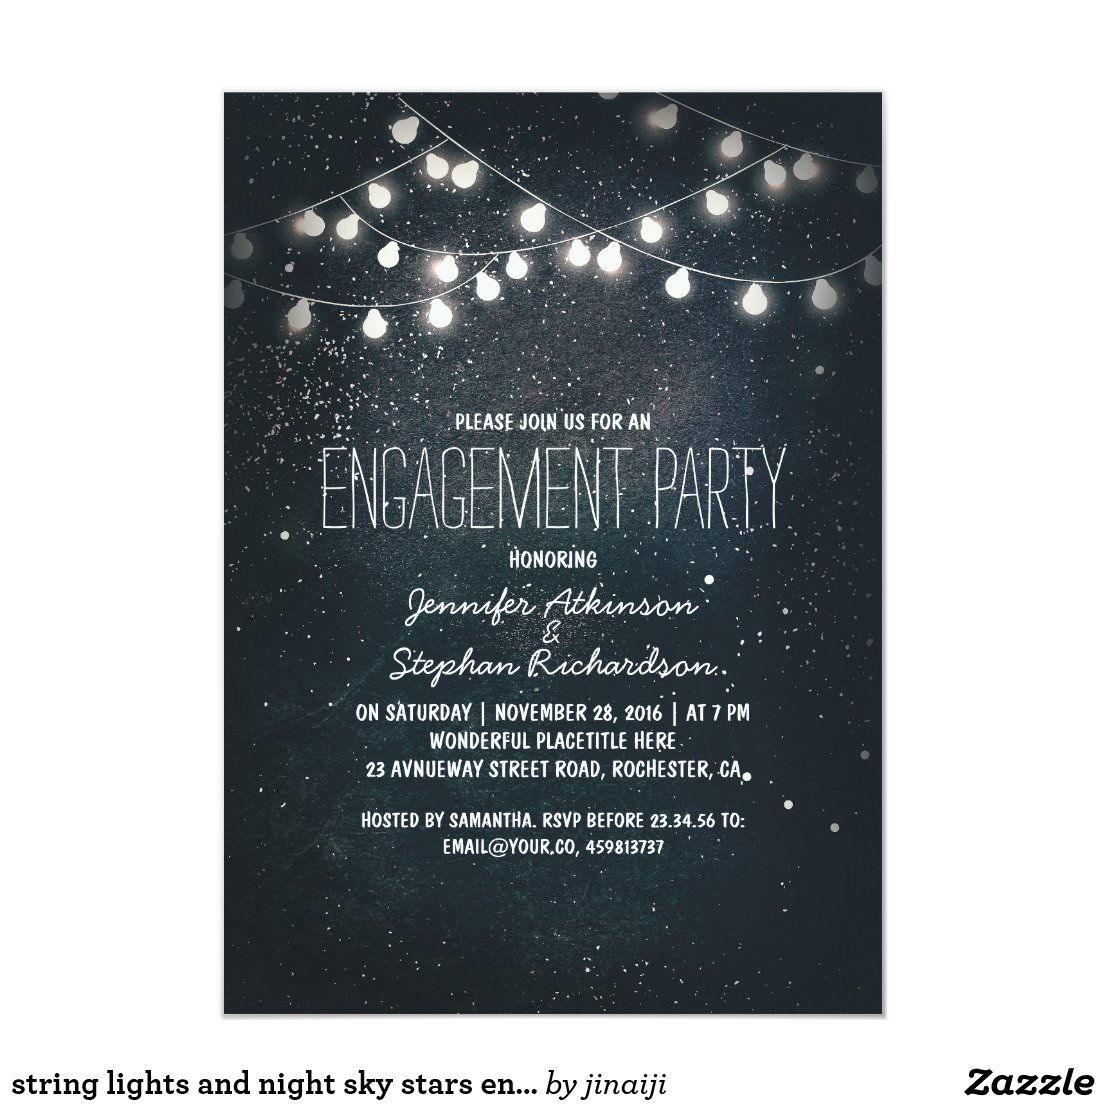 string lights and night sky stars engagement party invitation